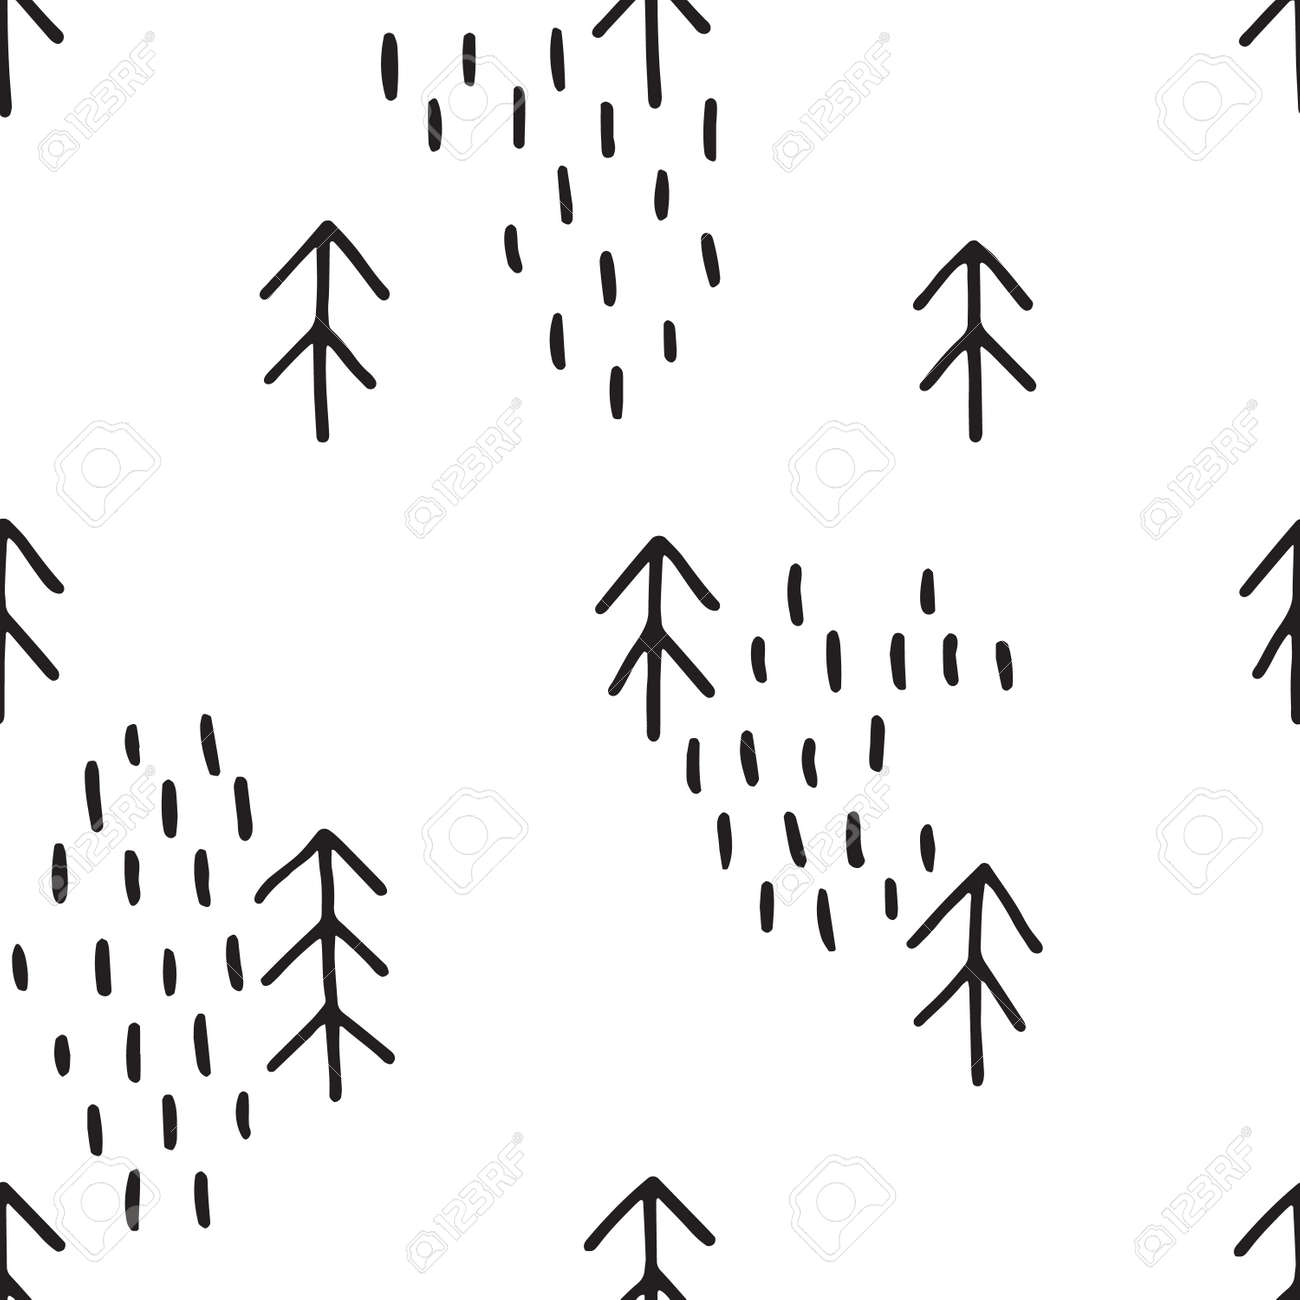 Seamless fir tree scandinavian pattern textile background wrapping - Scandinavian Pattern With Fir Trees Seamless Winter Patterns Hand Drawn In Black Ink